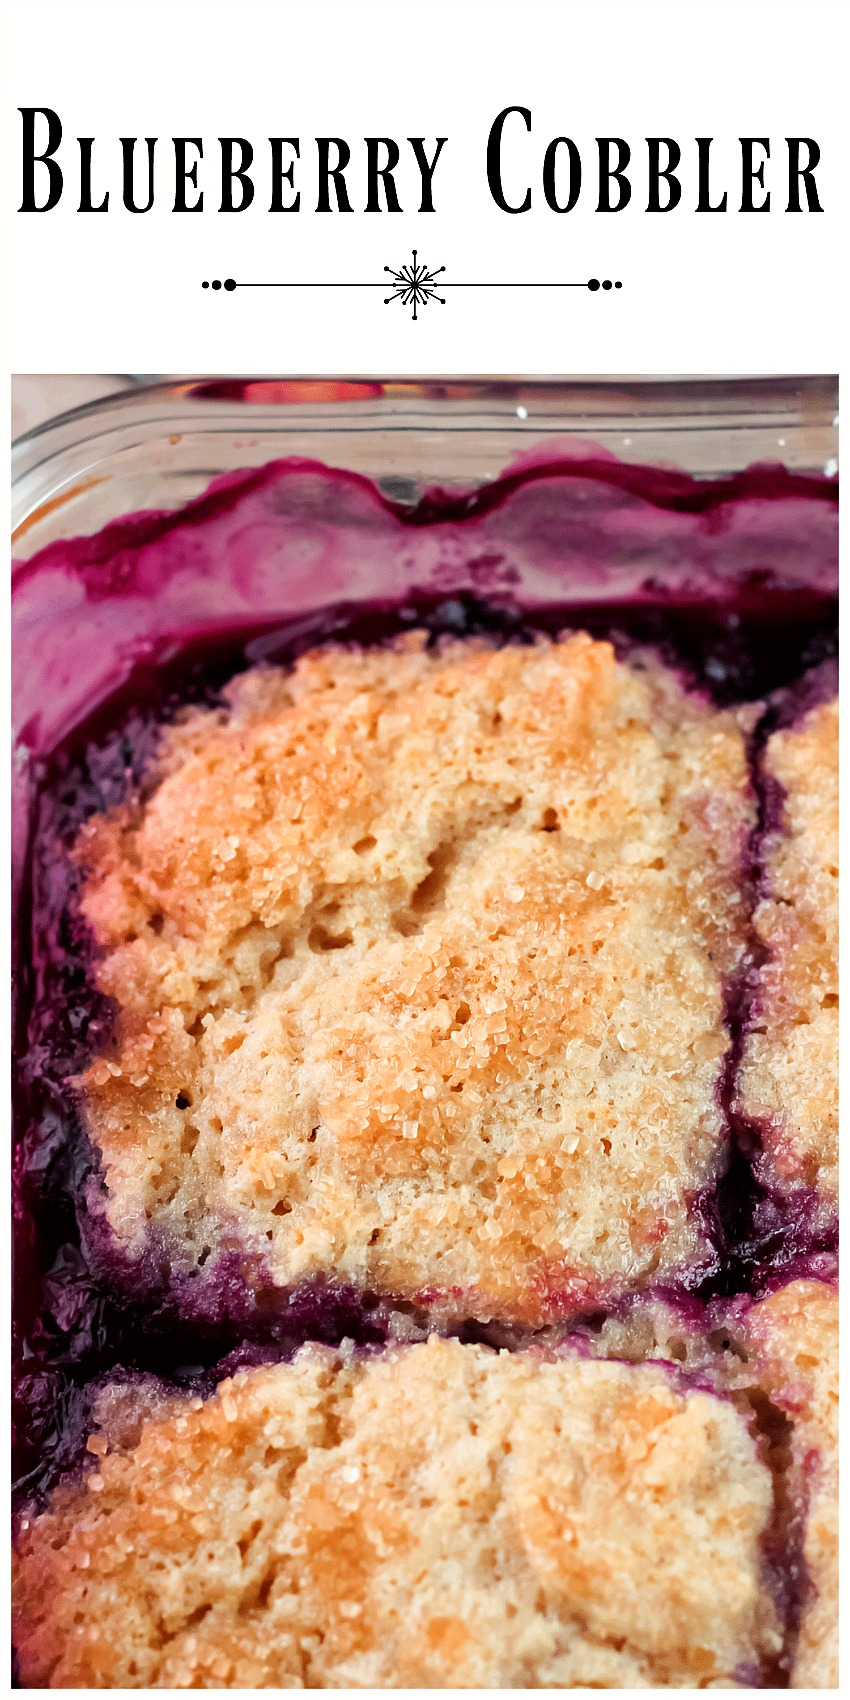 Blueberry Cobbler - An easy delicious homemade blueberry cobbler made with frozen blueberries, baked in a 9 inch baking pan. Serve with vanilla ice cream.